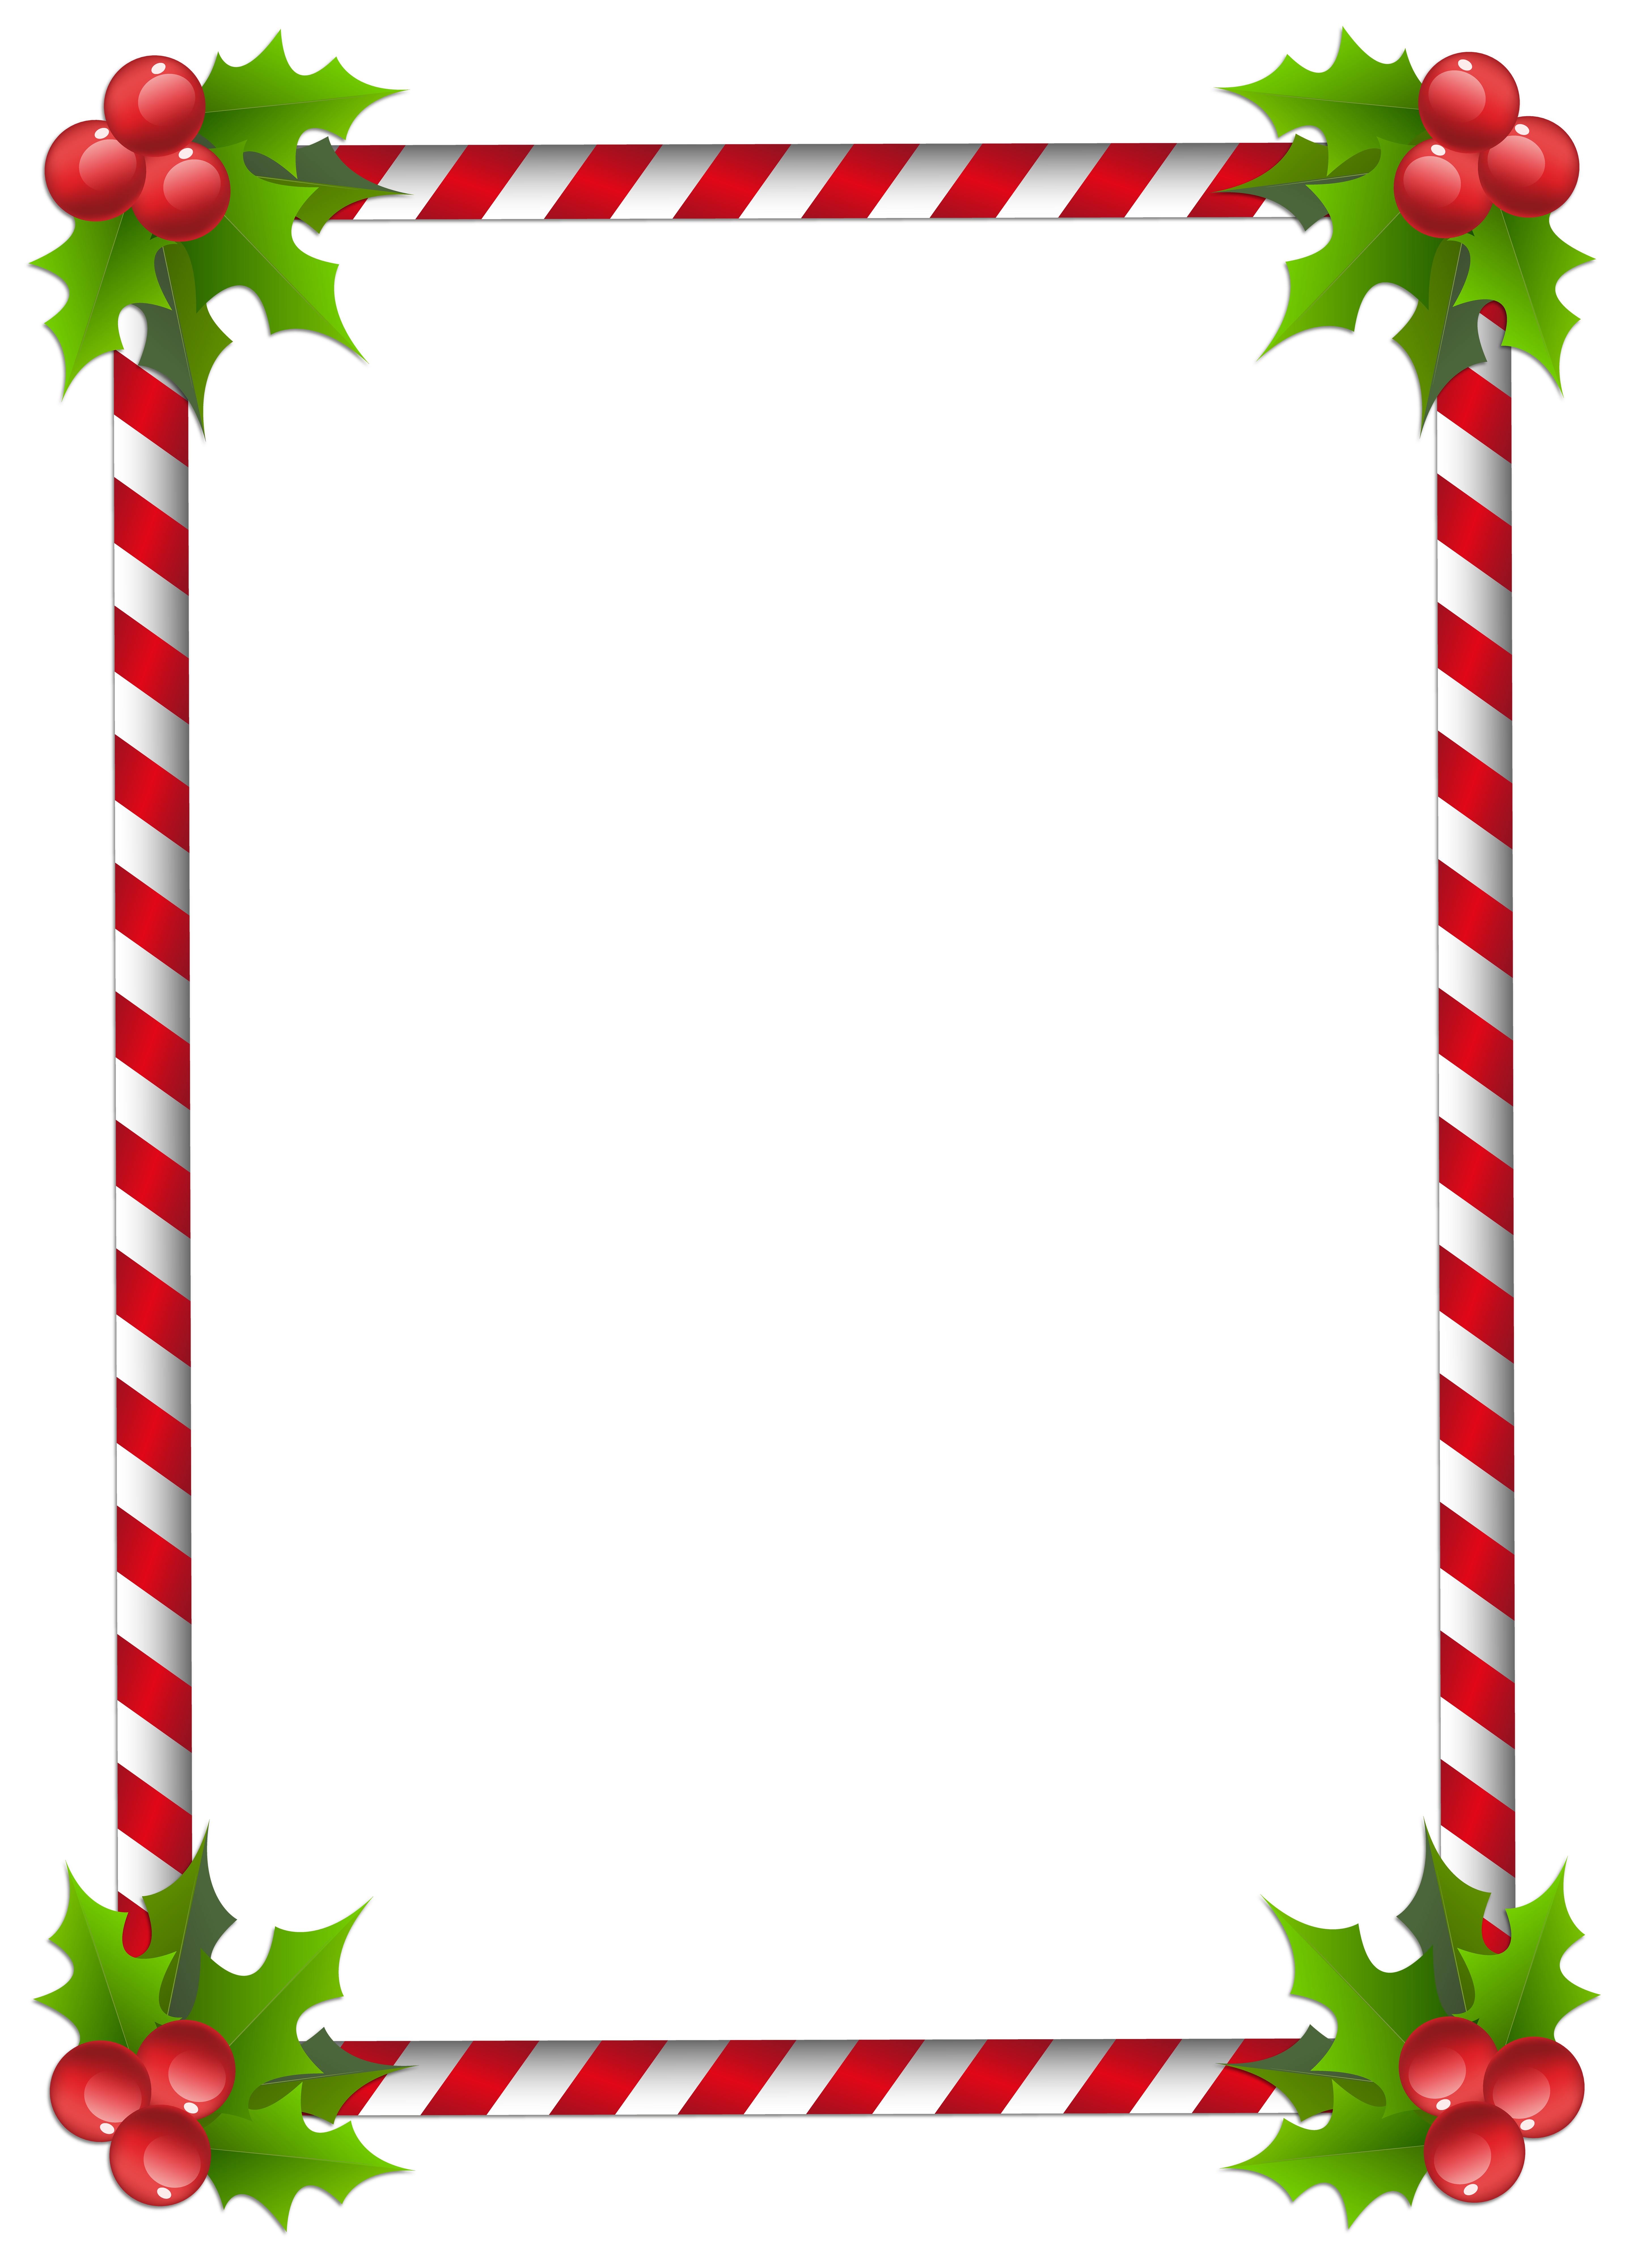 Transparent christmas border clipart png freeuse stock Christmas Transparent Classic Frame Border | Gallery Yopriceville ... png freeuse stock